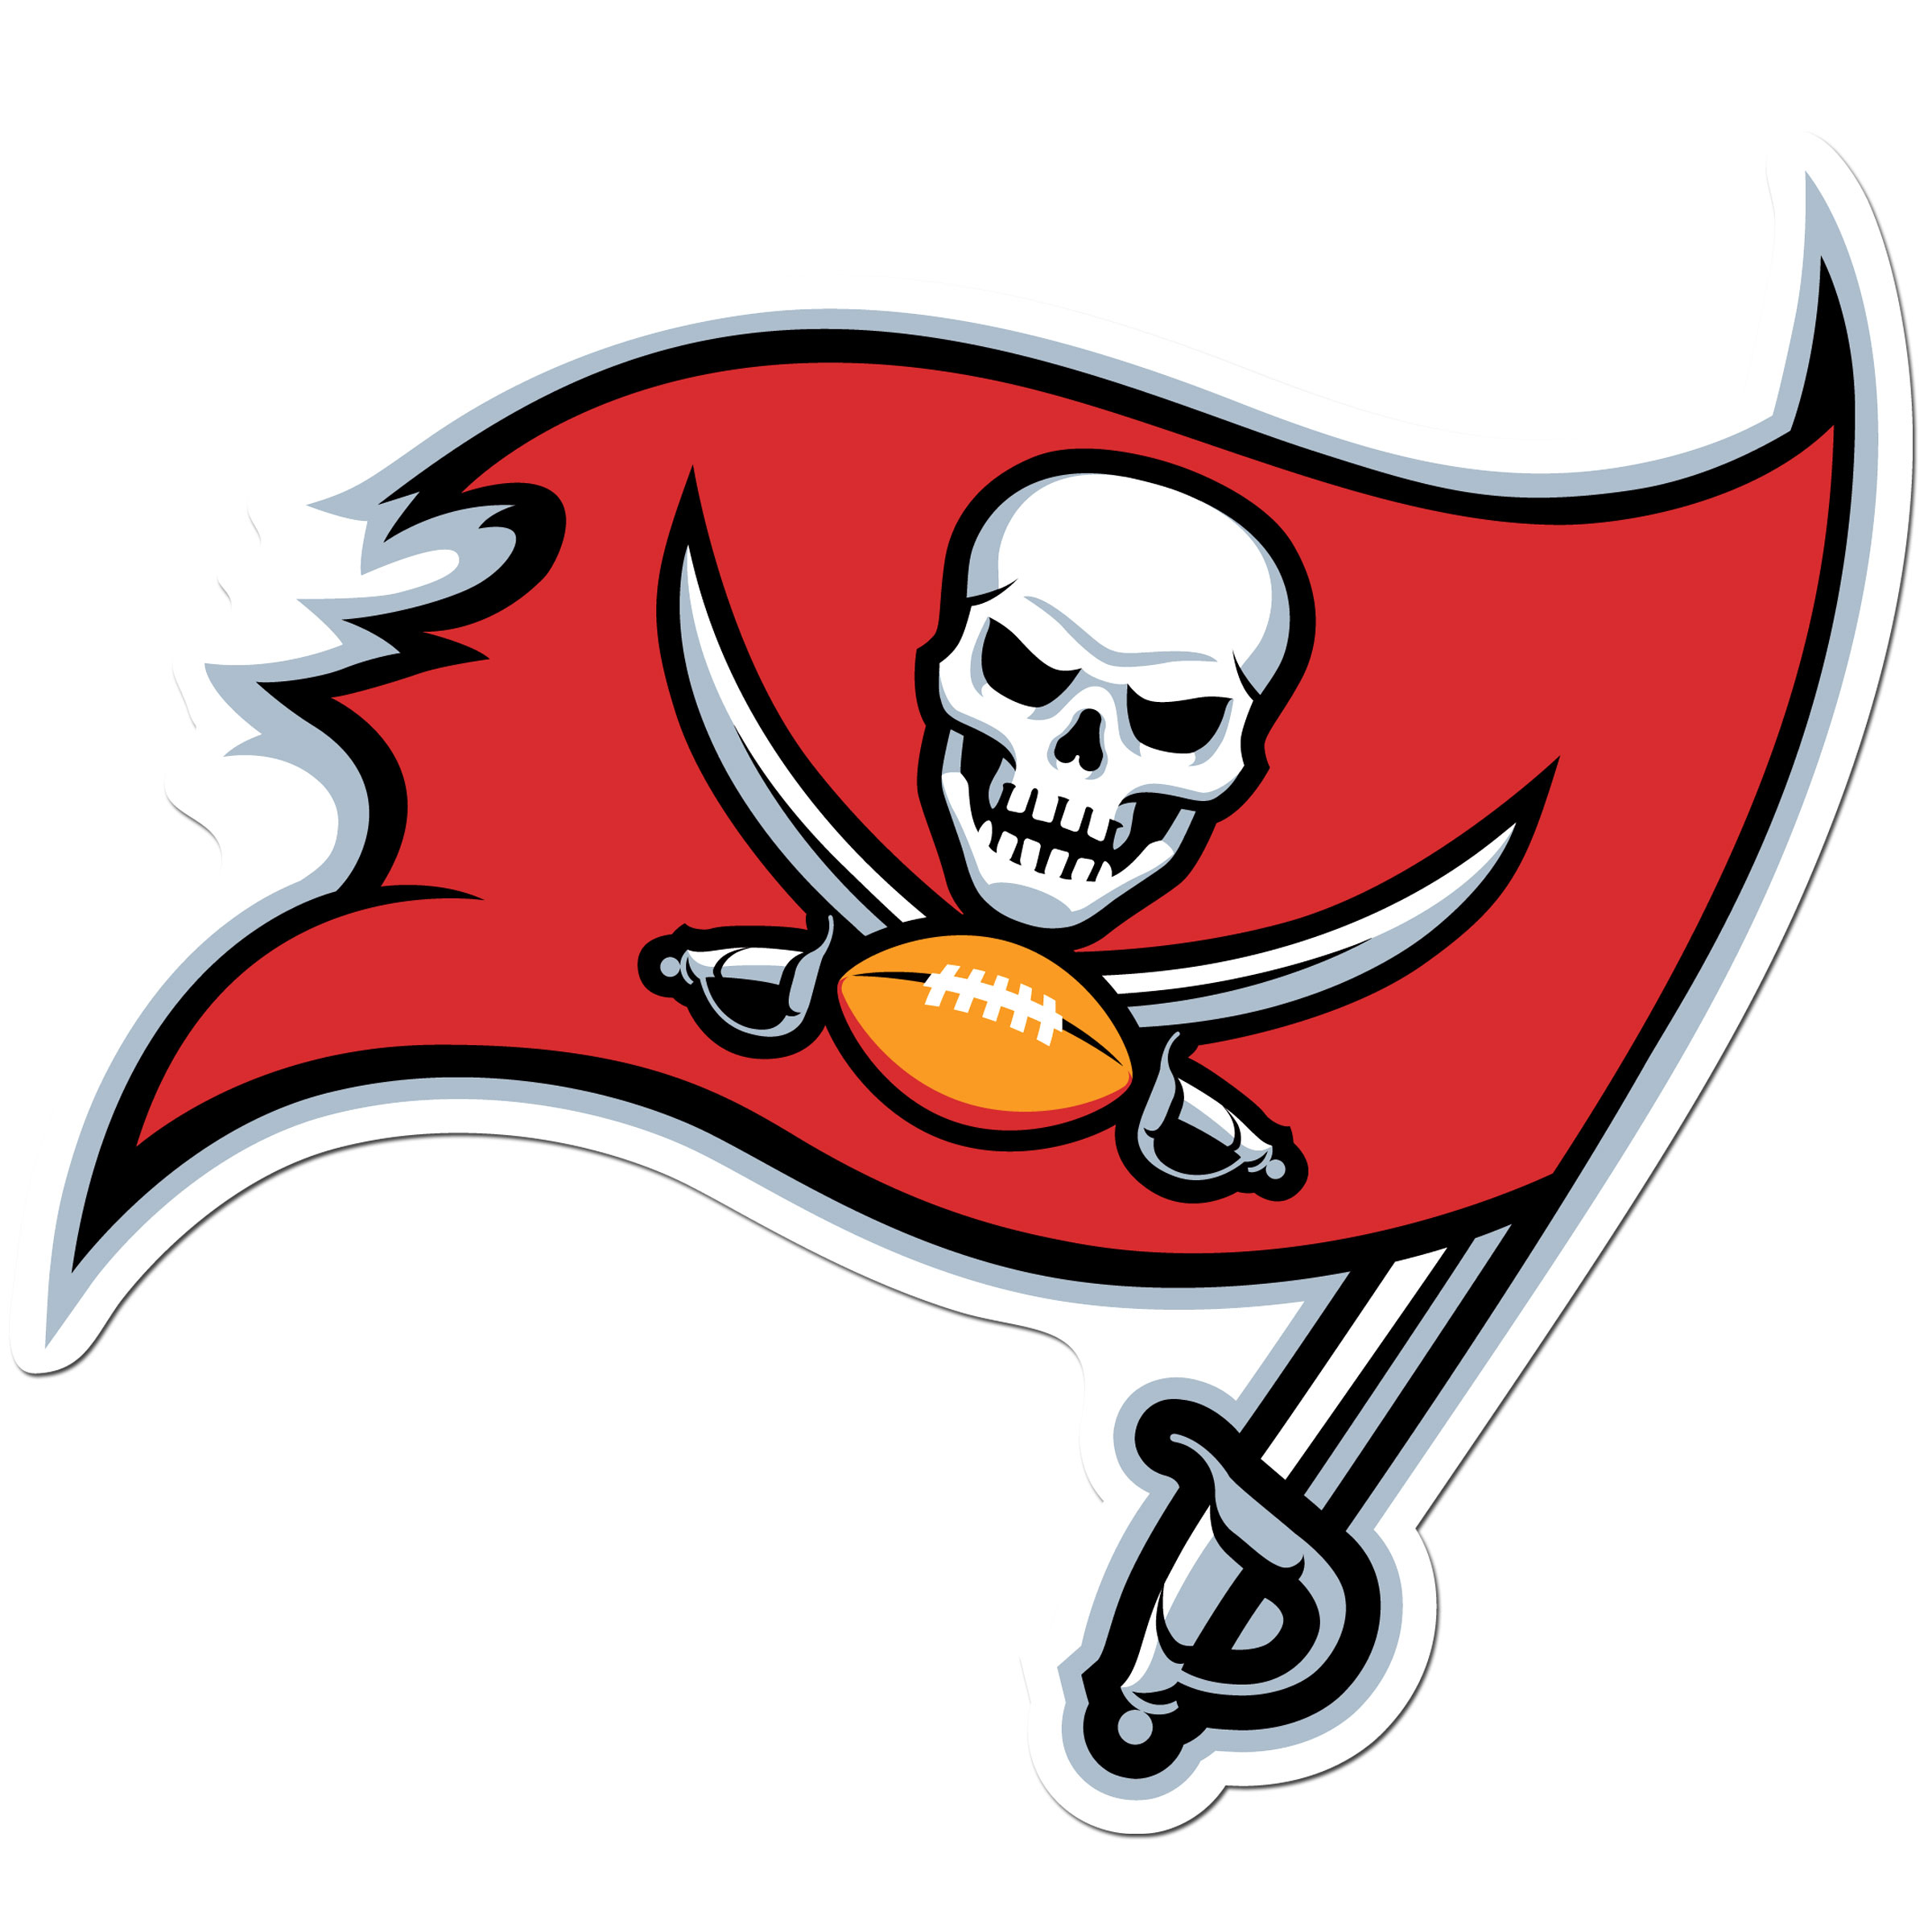 Tampa Bay Buccaneers 8 inch Auto Decal - This bold, 8 inch Tampa Bay Buccaneers is a great way to show off your team pride! The low tack vinyl decal is easily positioned and adjusted to make sure you get that logo in just the right spot on your vehicle. Designed to be used on the outside of the window.